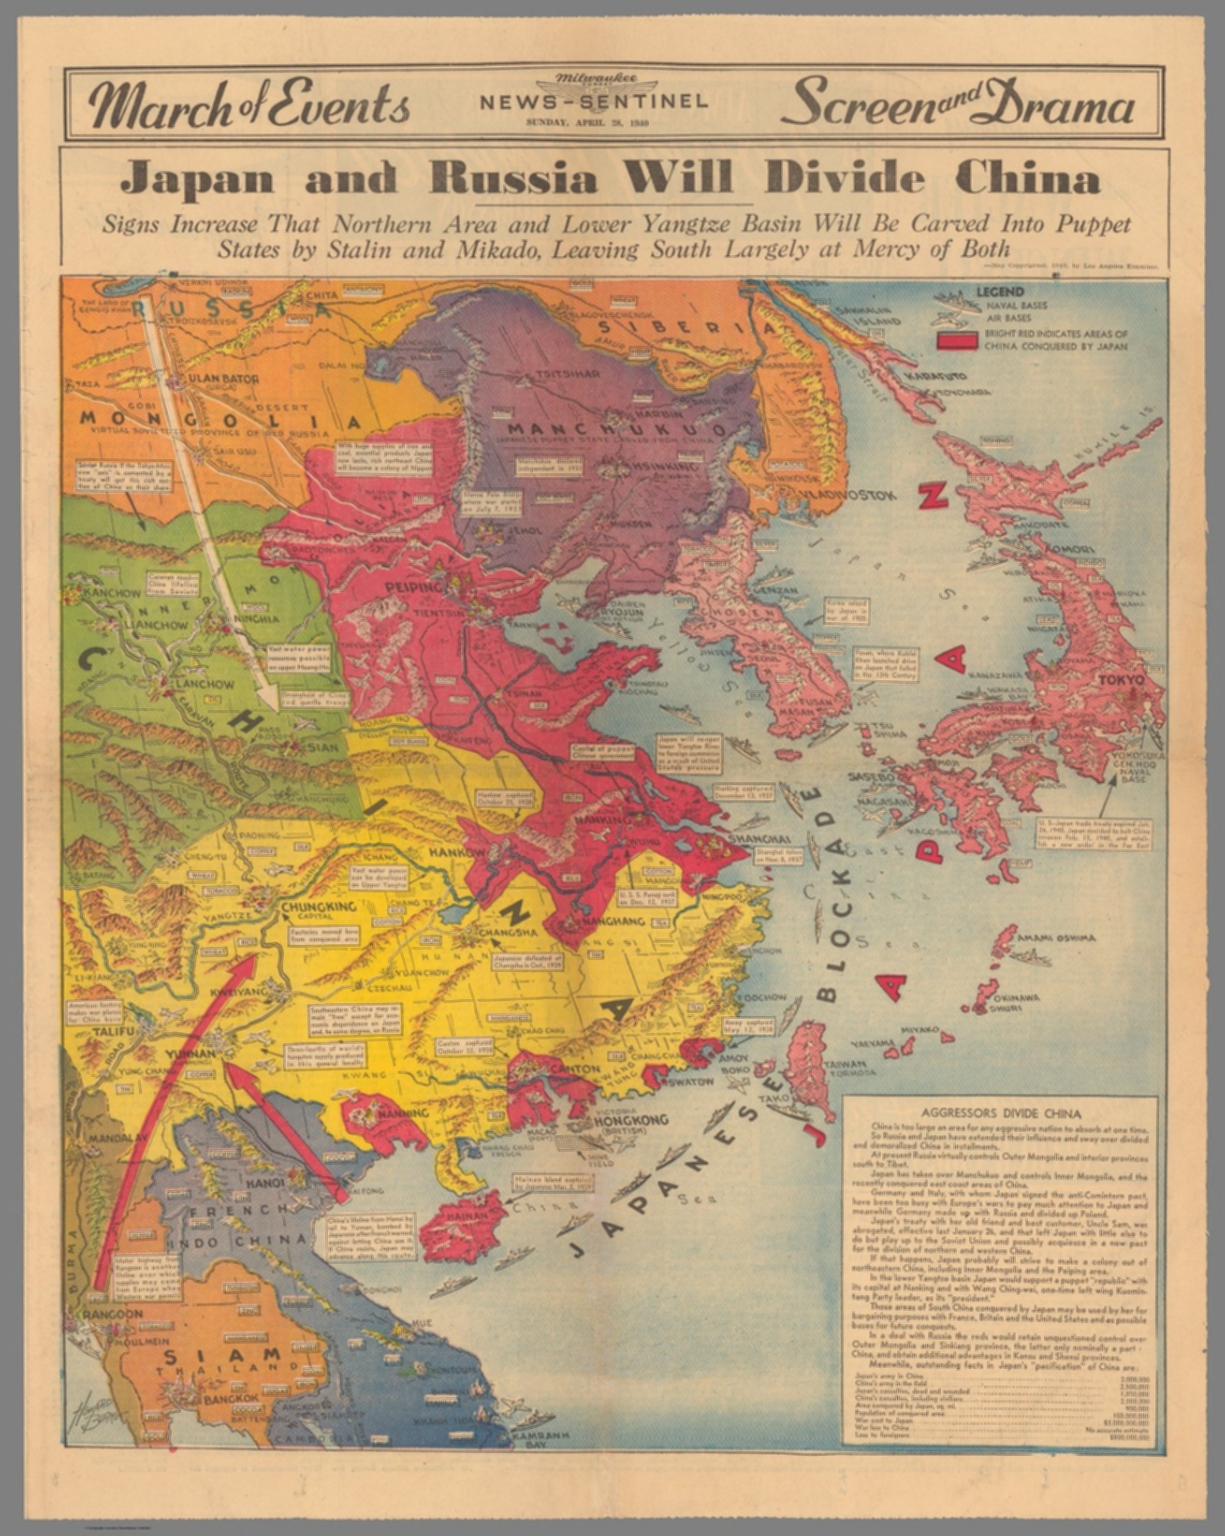 Japan and Russia Will Divide China